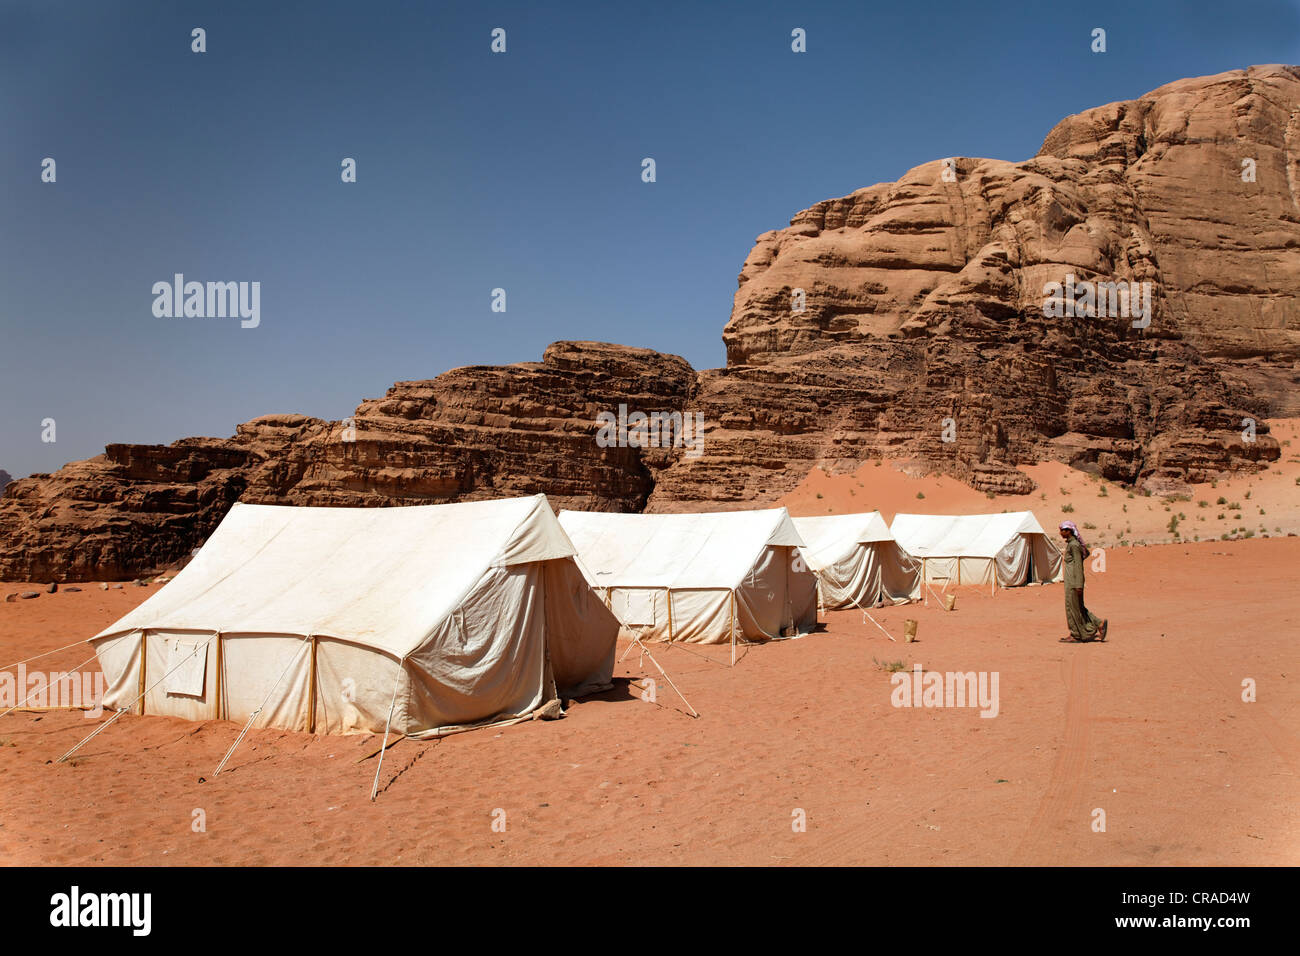 C& for tourists tents Bedouin mountains desert nature preserve Wadi Rum Hashemite Kingdom of Jordan Middle East Asia : middle eastern tents - memphite.com